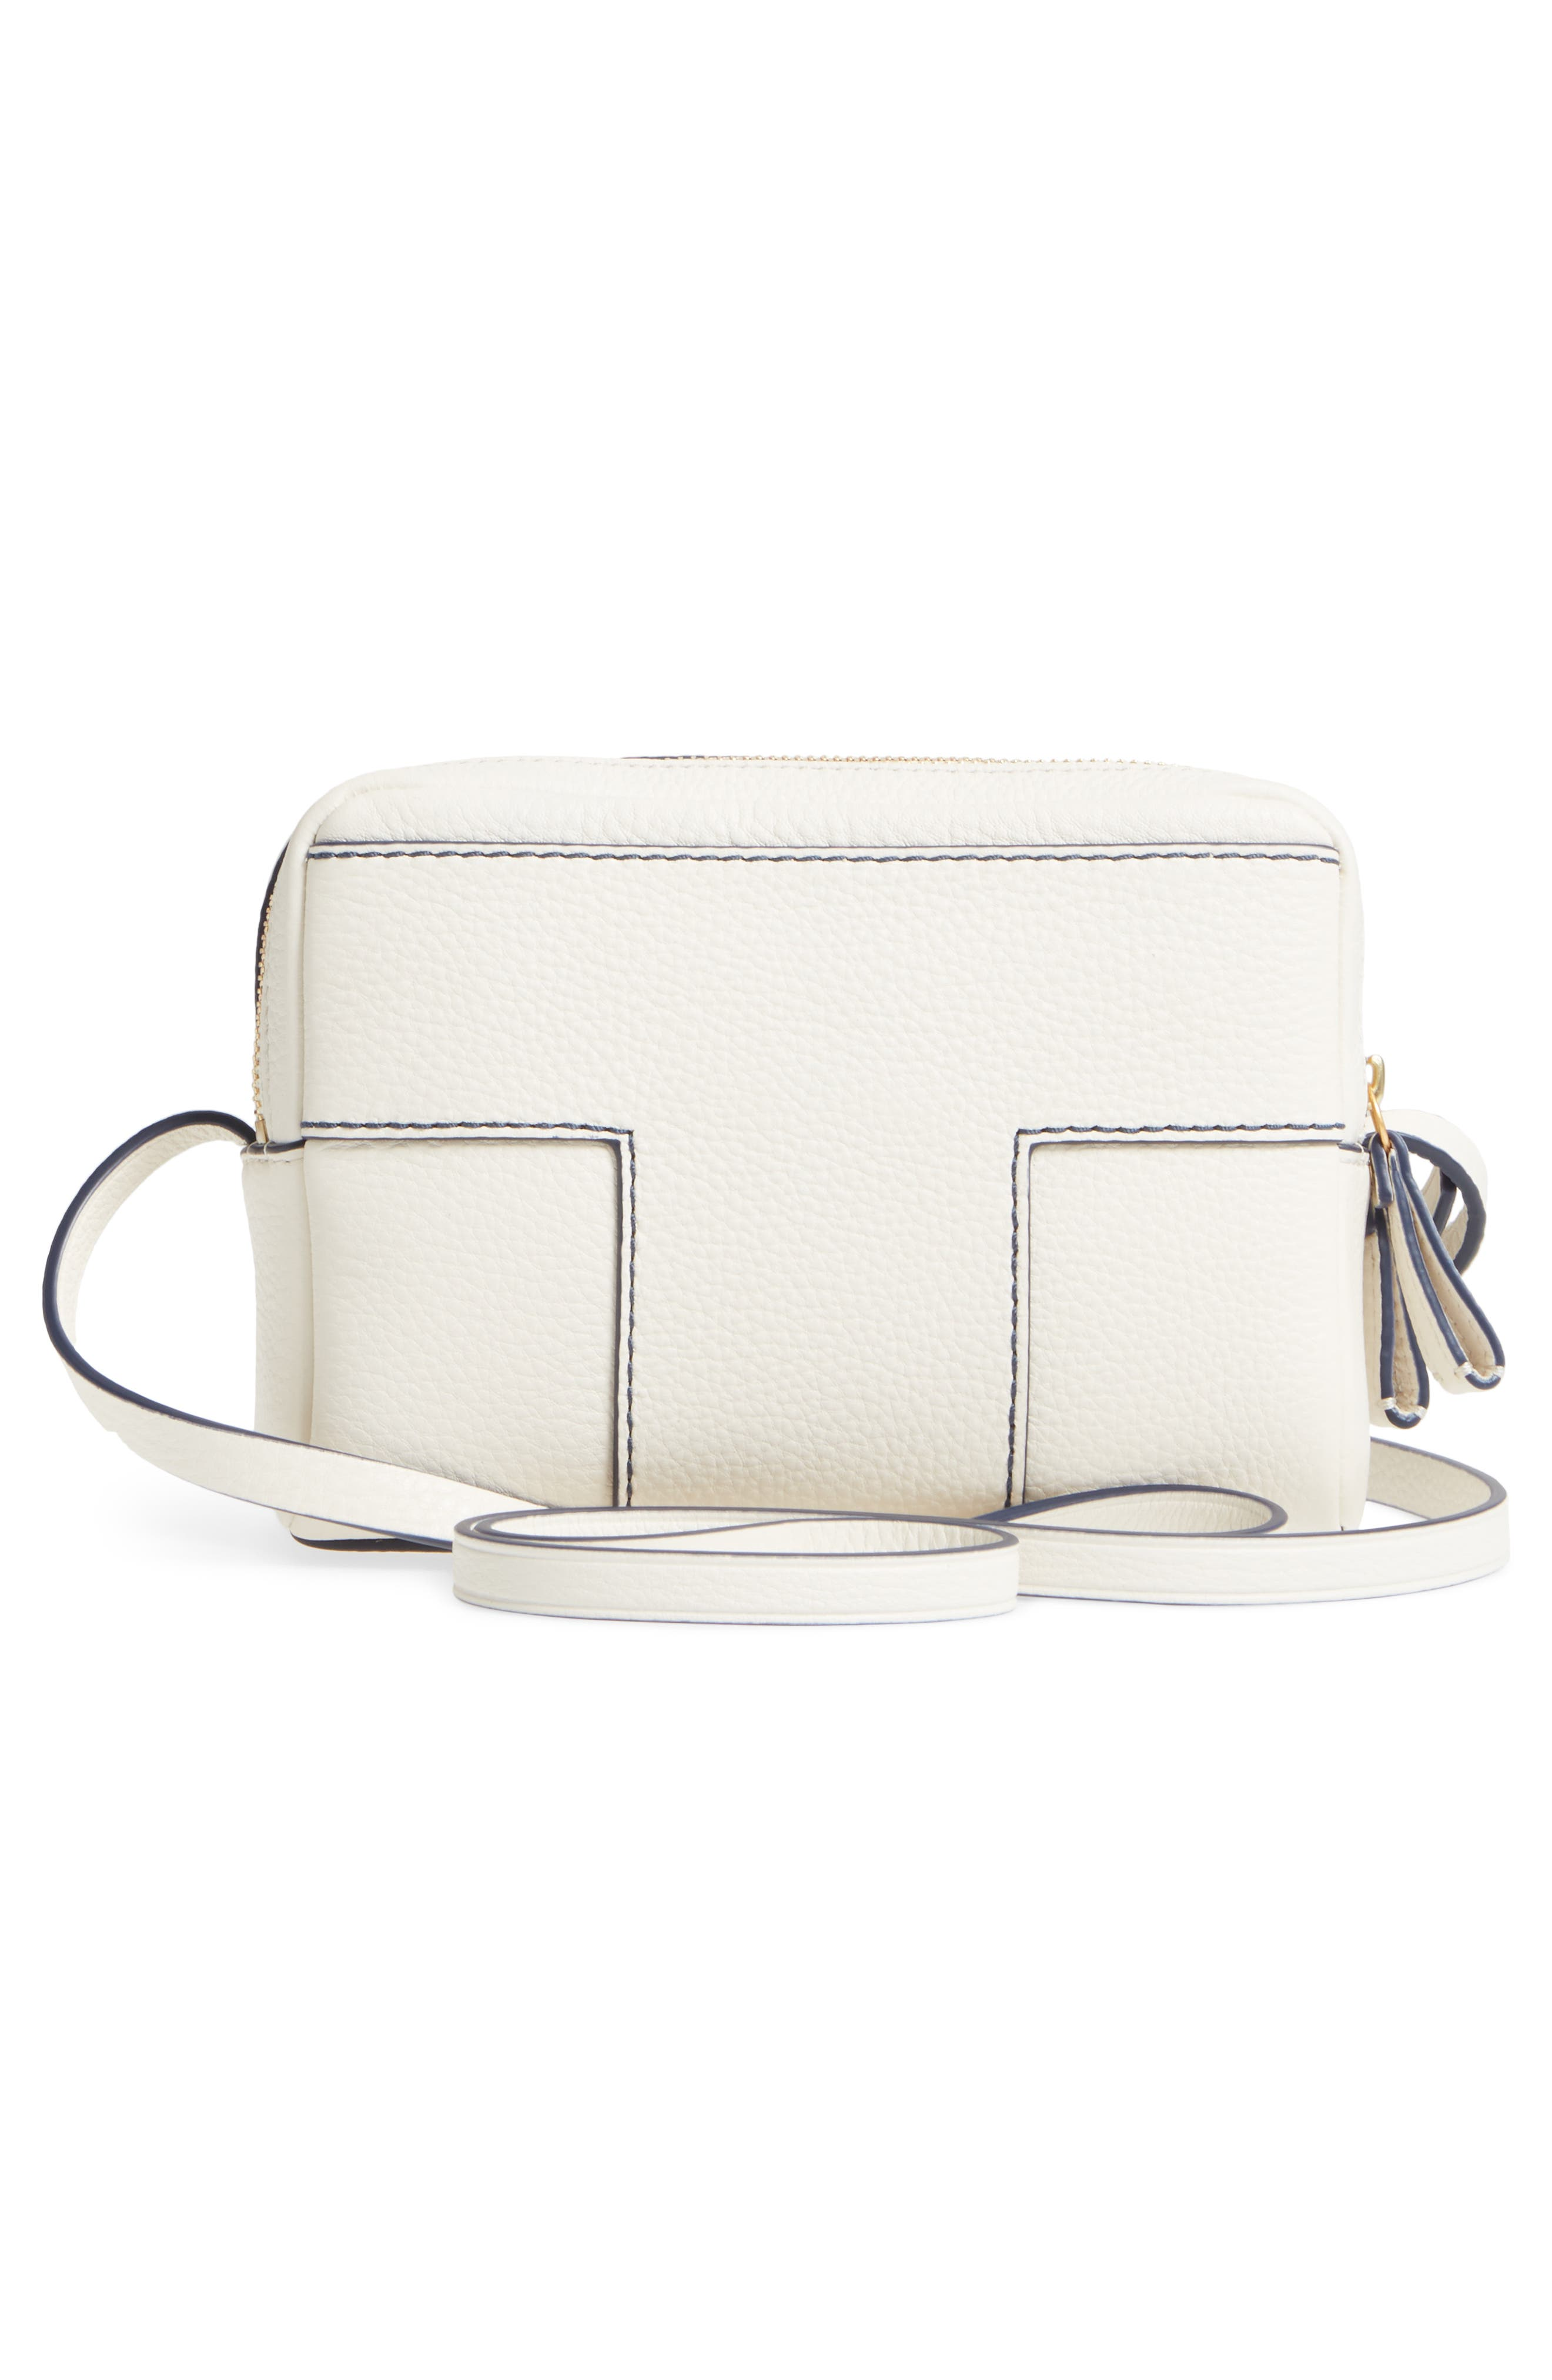 Block-T Double Zip Leather Crossbody Bag,                             Alternate thumbnail 3, color,                             New Ivory